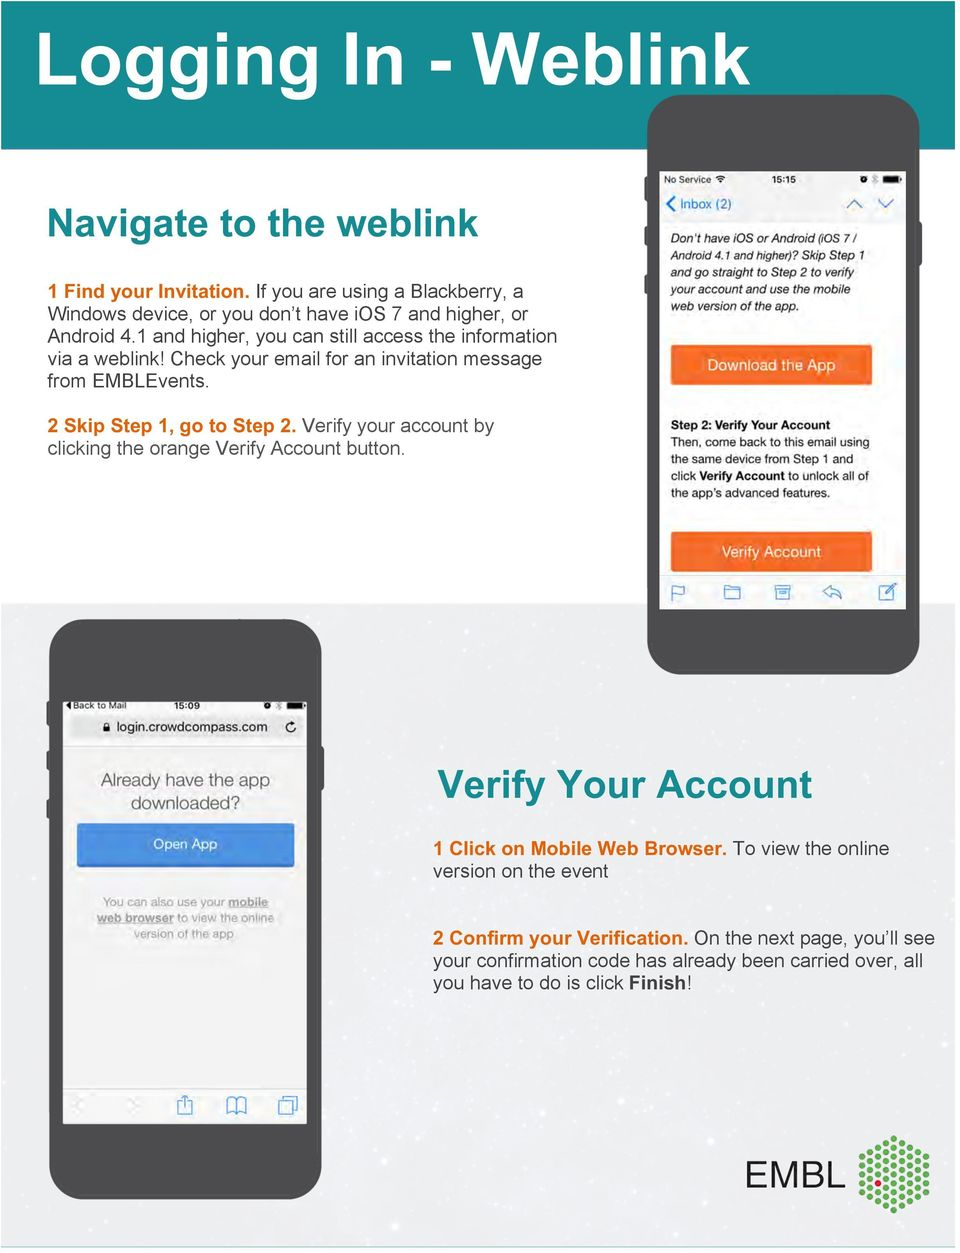 1 and higher, you can still access the information via a weblink! Check your email for an invitation message from EMBLEvents. 2 Skip Step 1, go to Step 2.